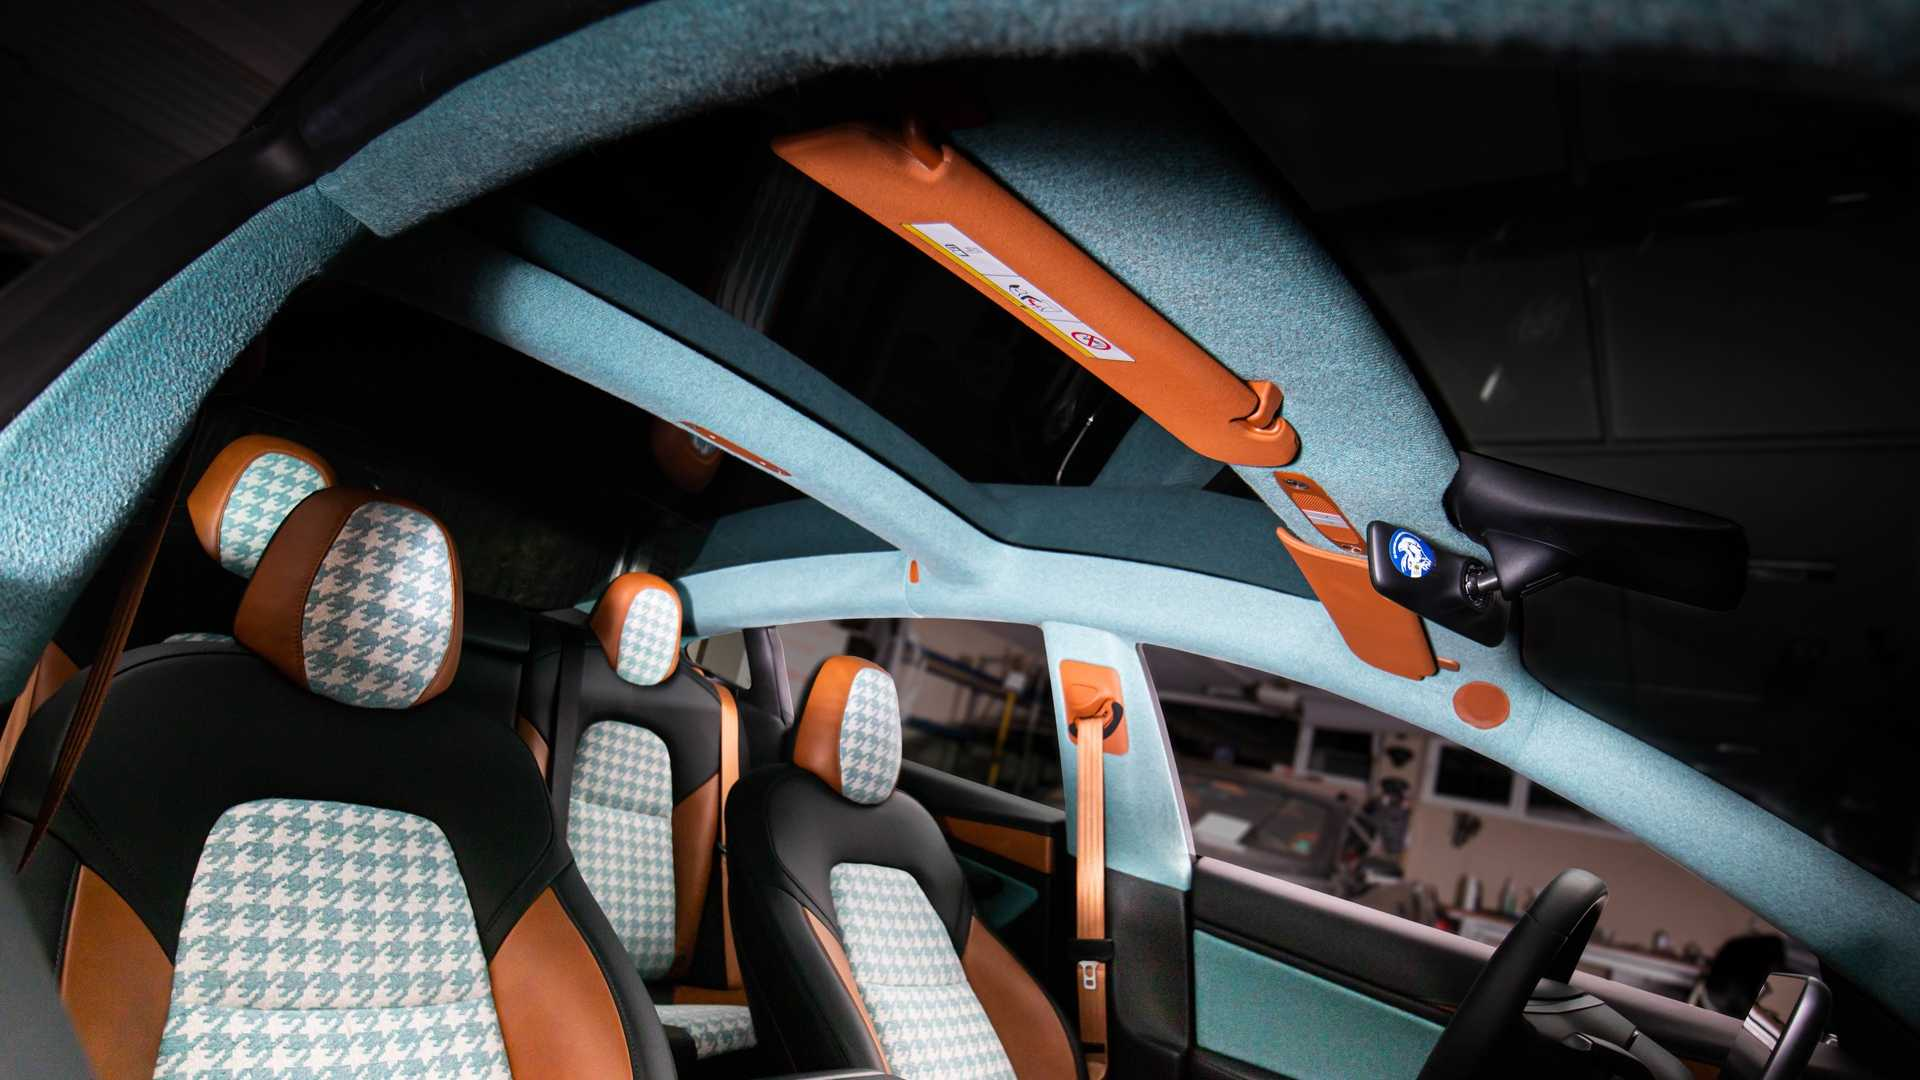 Vilner Blings Tesla Model 3 Interior With Houndstooth And Turquoise